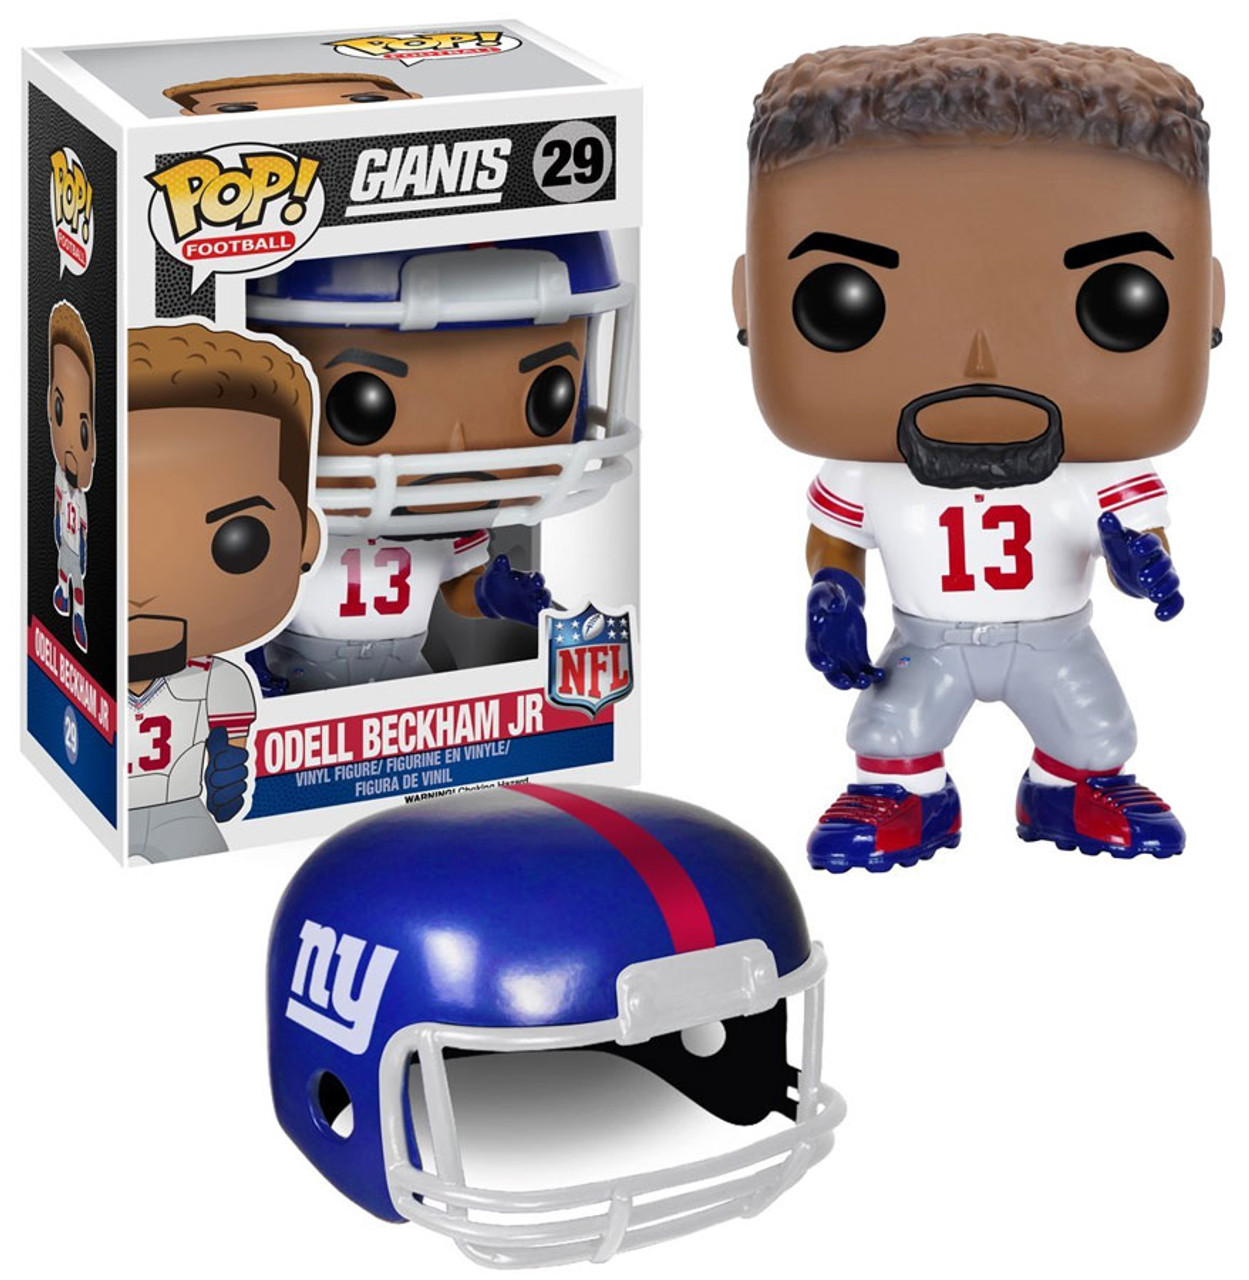 Pop Sports NFL Odell Beckham JR Cleveland Browns Pop Vinyl Figure Bundled with Pop Shield Protector